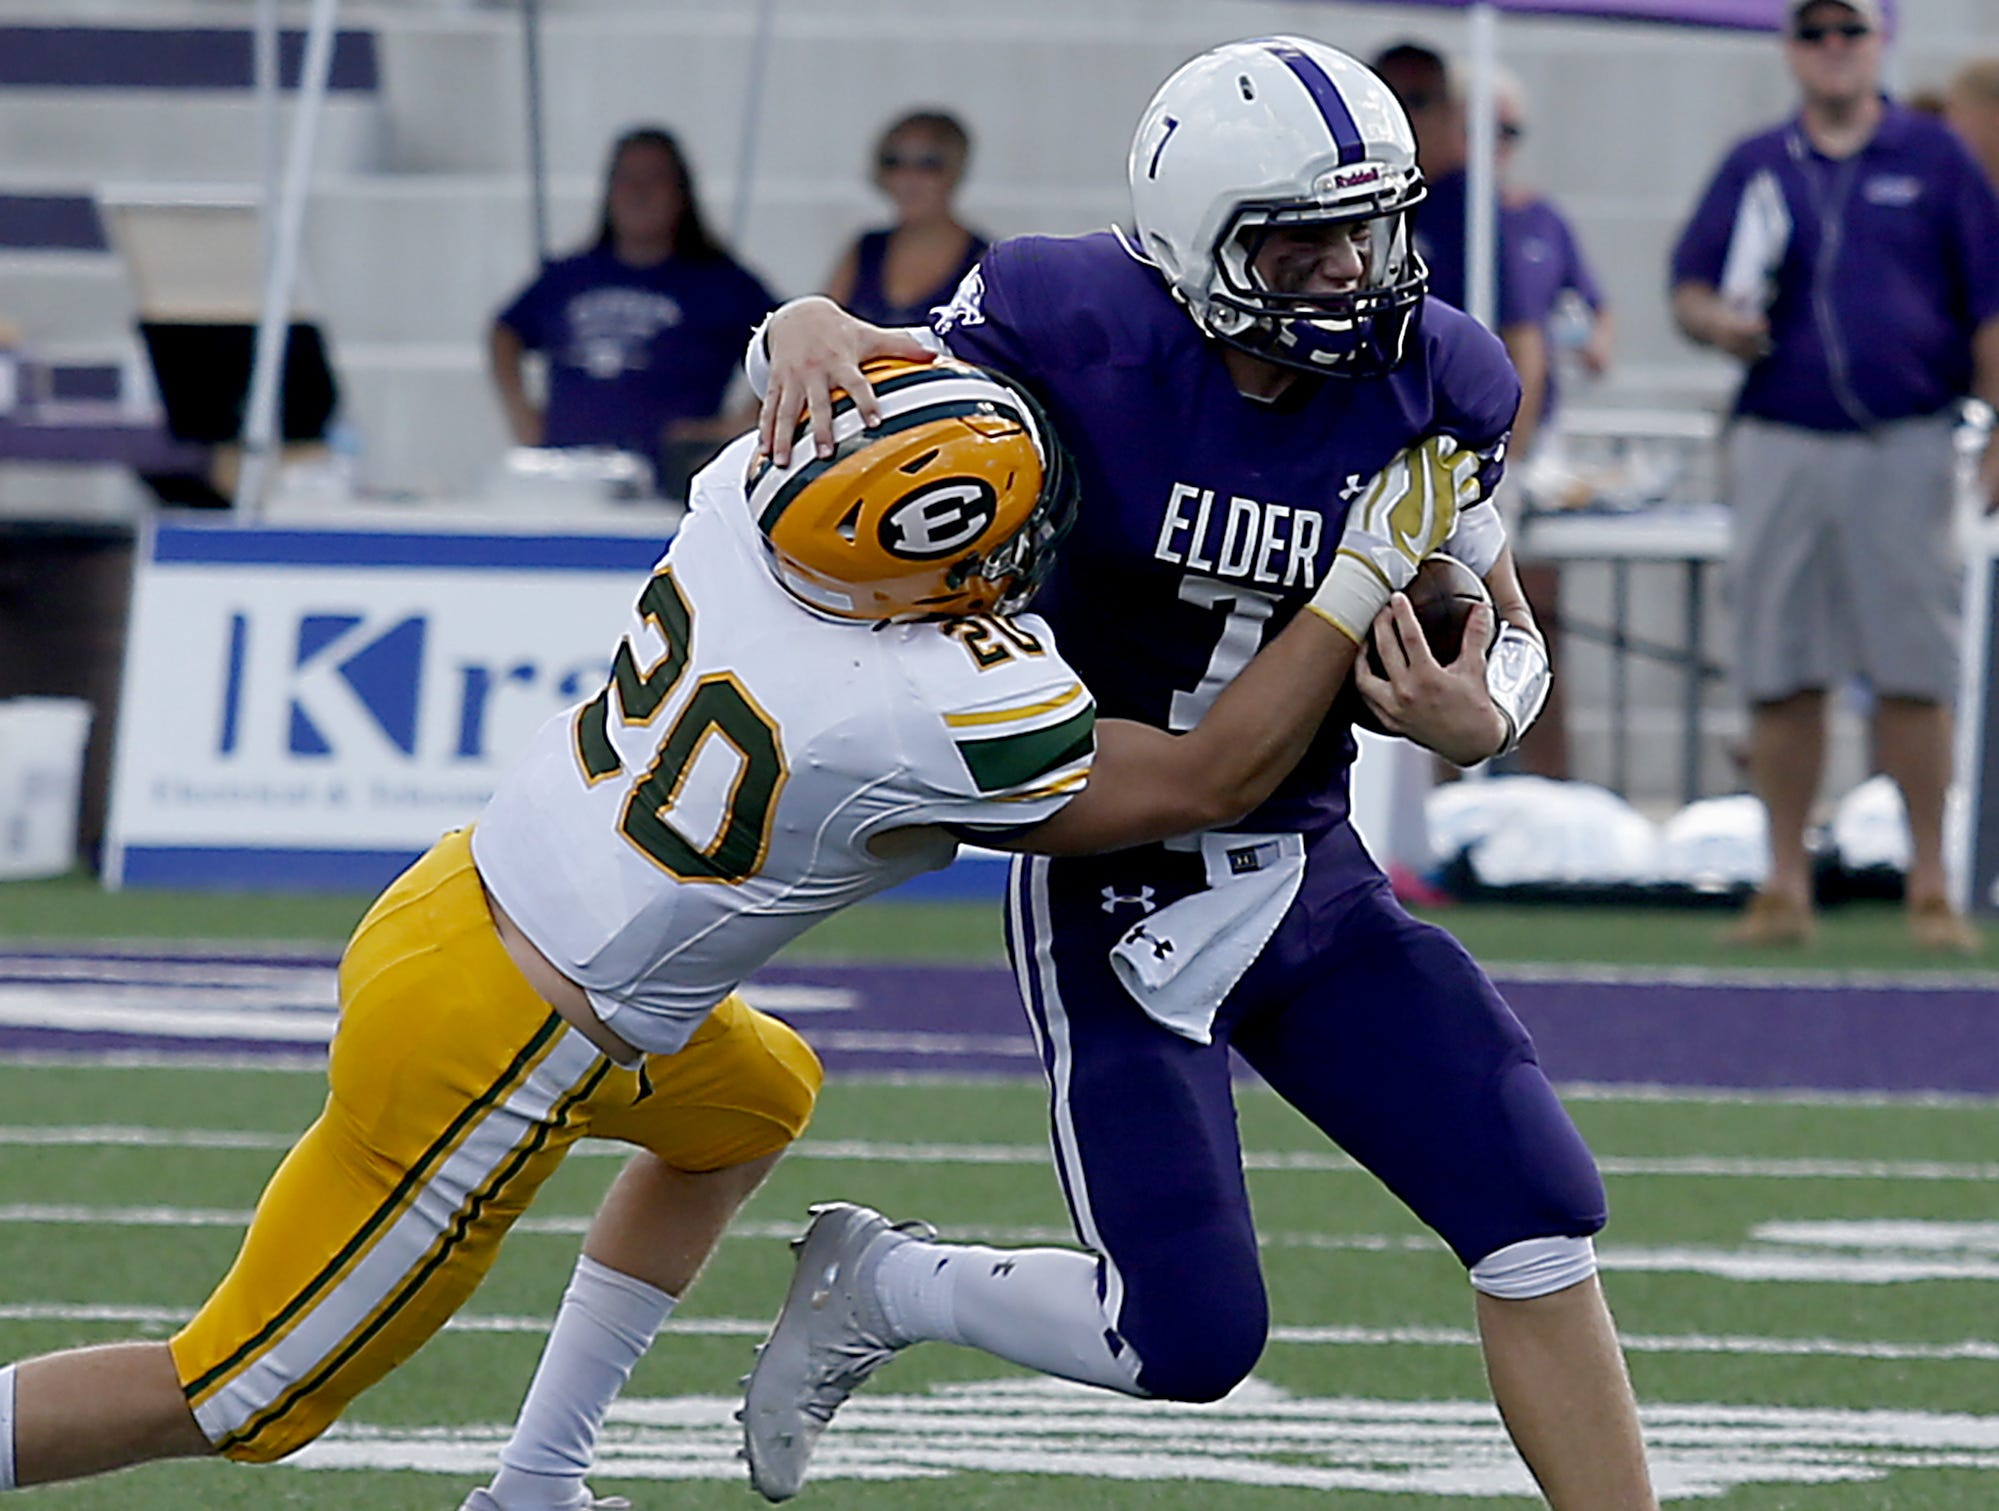 Elder quarterback Matthew Luebbe is caught by a St. Edward player during their game at The Pit in Cincinnati Saturday, Sept. 15, 2018.